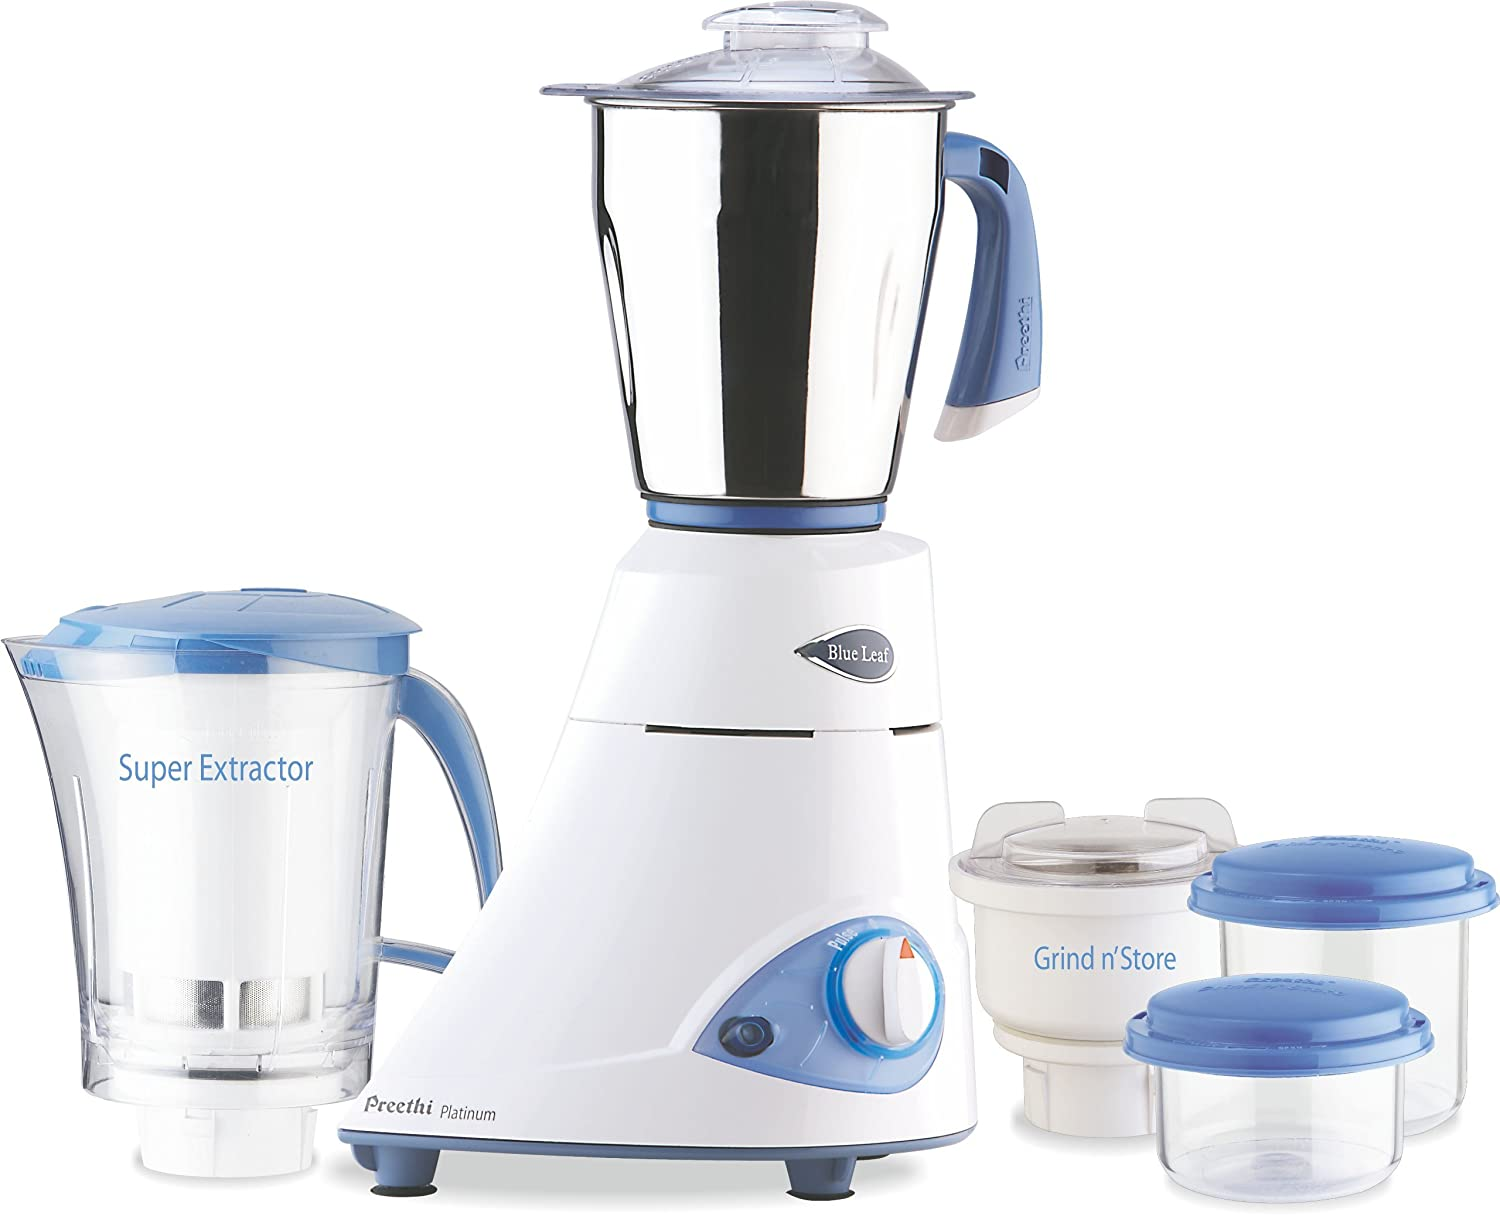 Preethi Blue Leaf Platinum 550 Watts 3 Jar Indian Mixer Grinder 110 Volts